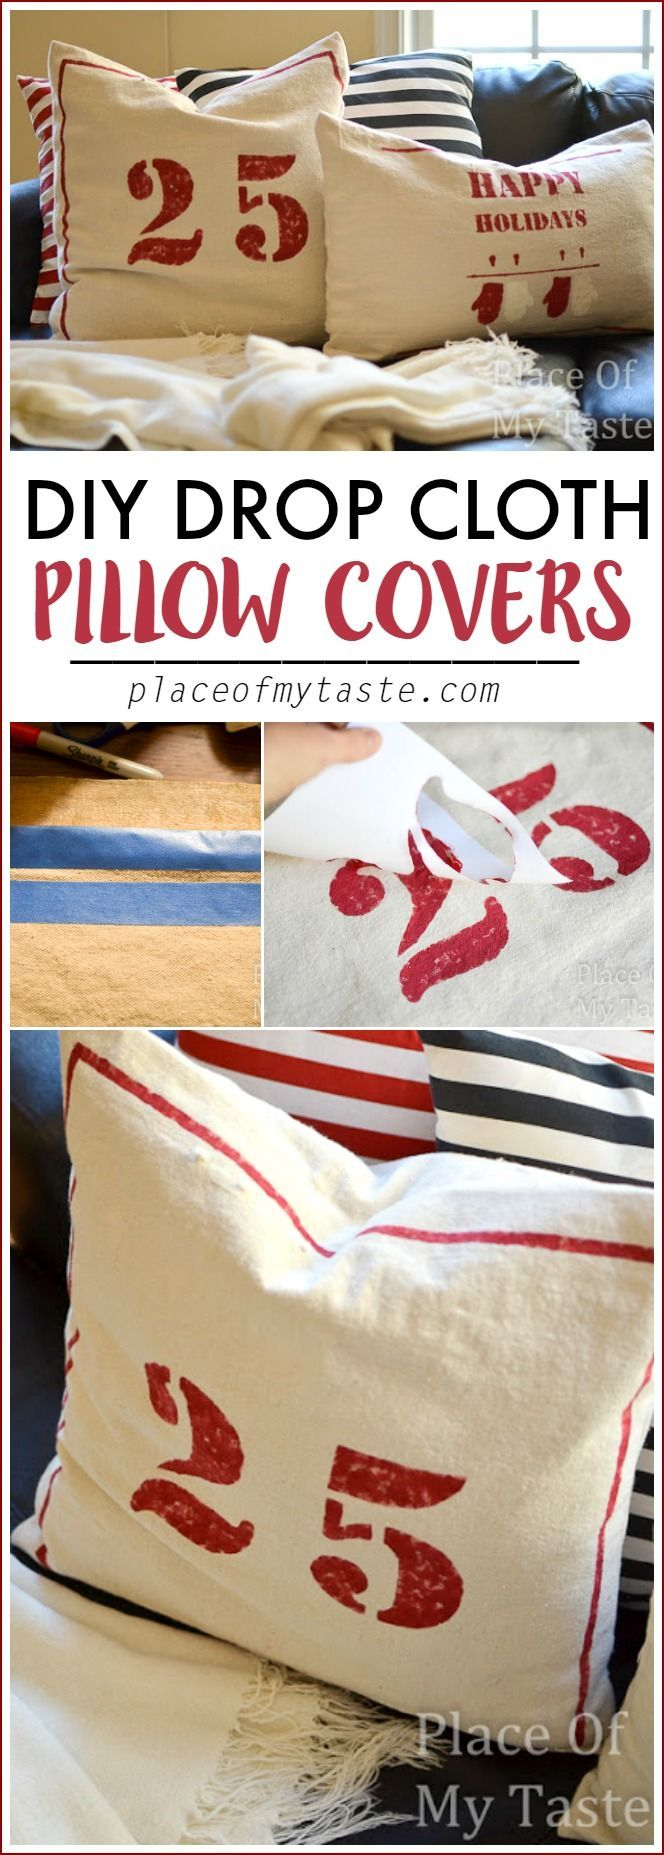 Best mom cushion cover valentineblog net - 1000 Images About Pillows On Pinterest Diy Pillows Photo Pillows And Flower Pillow